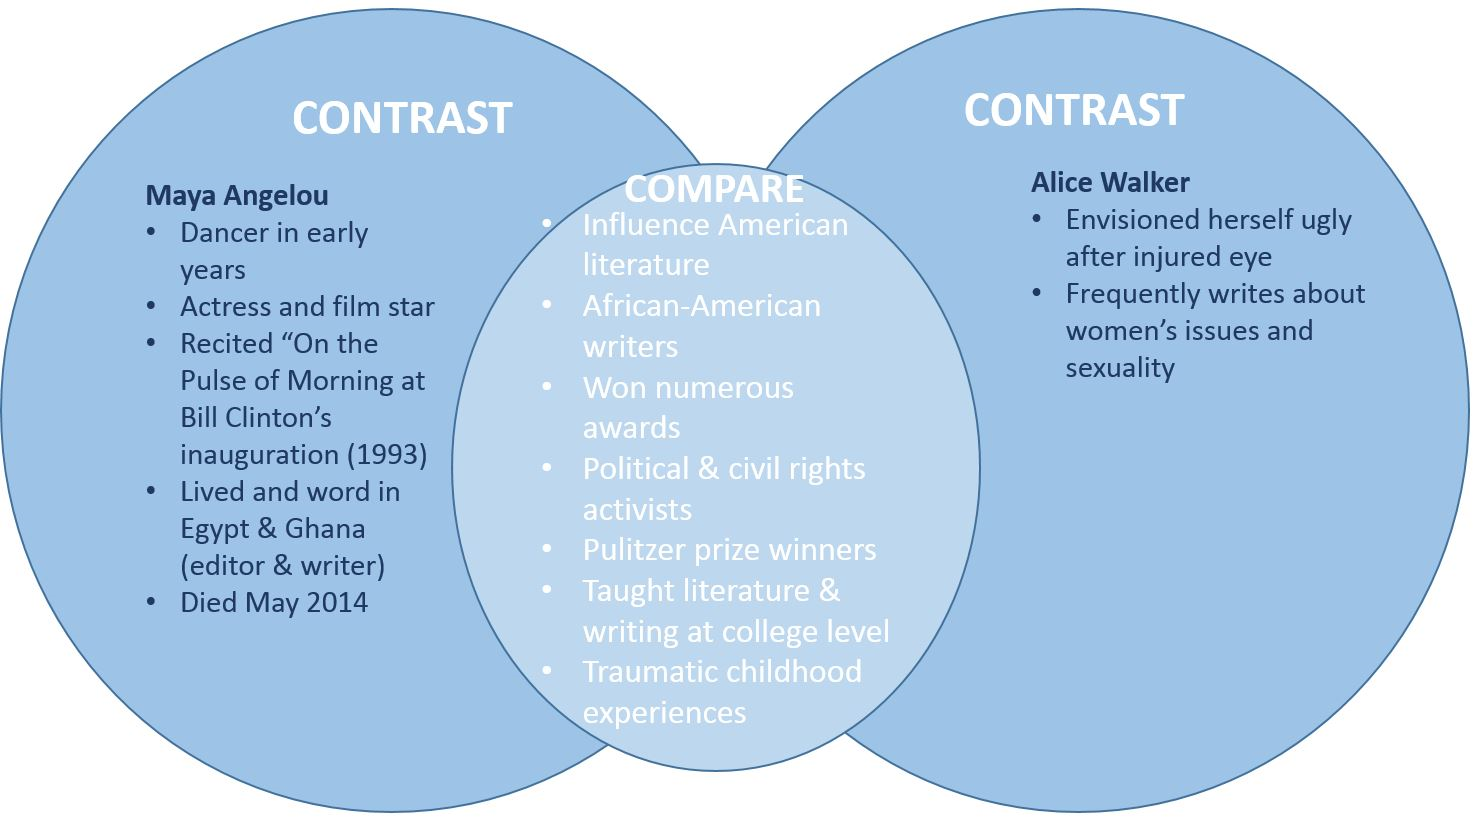 essay about a angelou hiv aids essay in english a angelou poems  comparison contrast essay enc c prof forbes research venn diagram angelou walker example